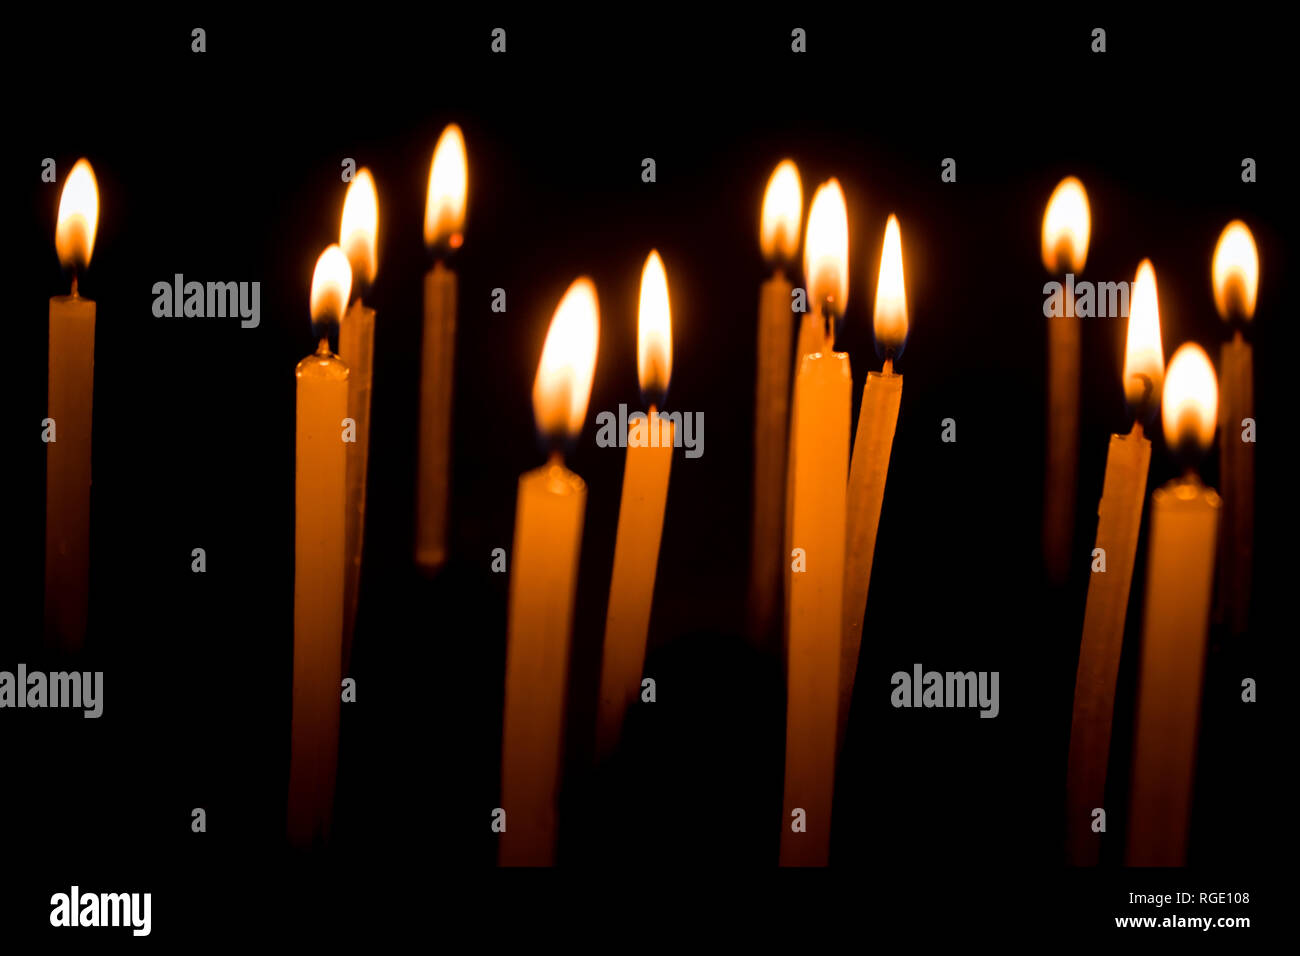 Many christmas candles burning at night on the black background. Candle flame set isolated in black background. Group of burning candles in dark with  Stock Photo